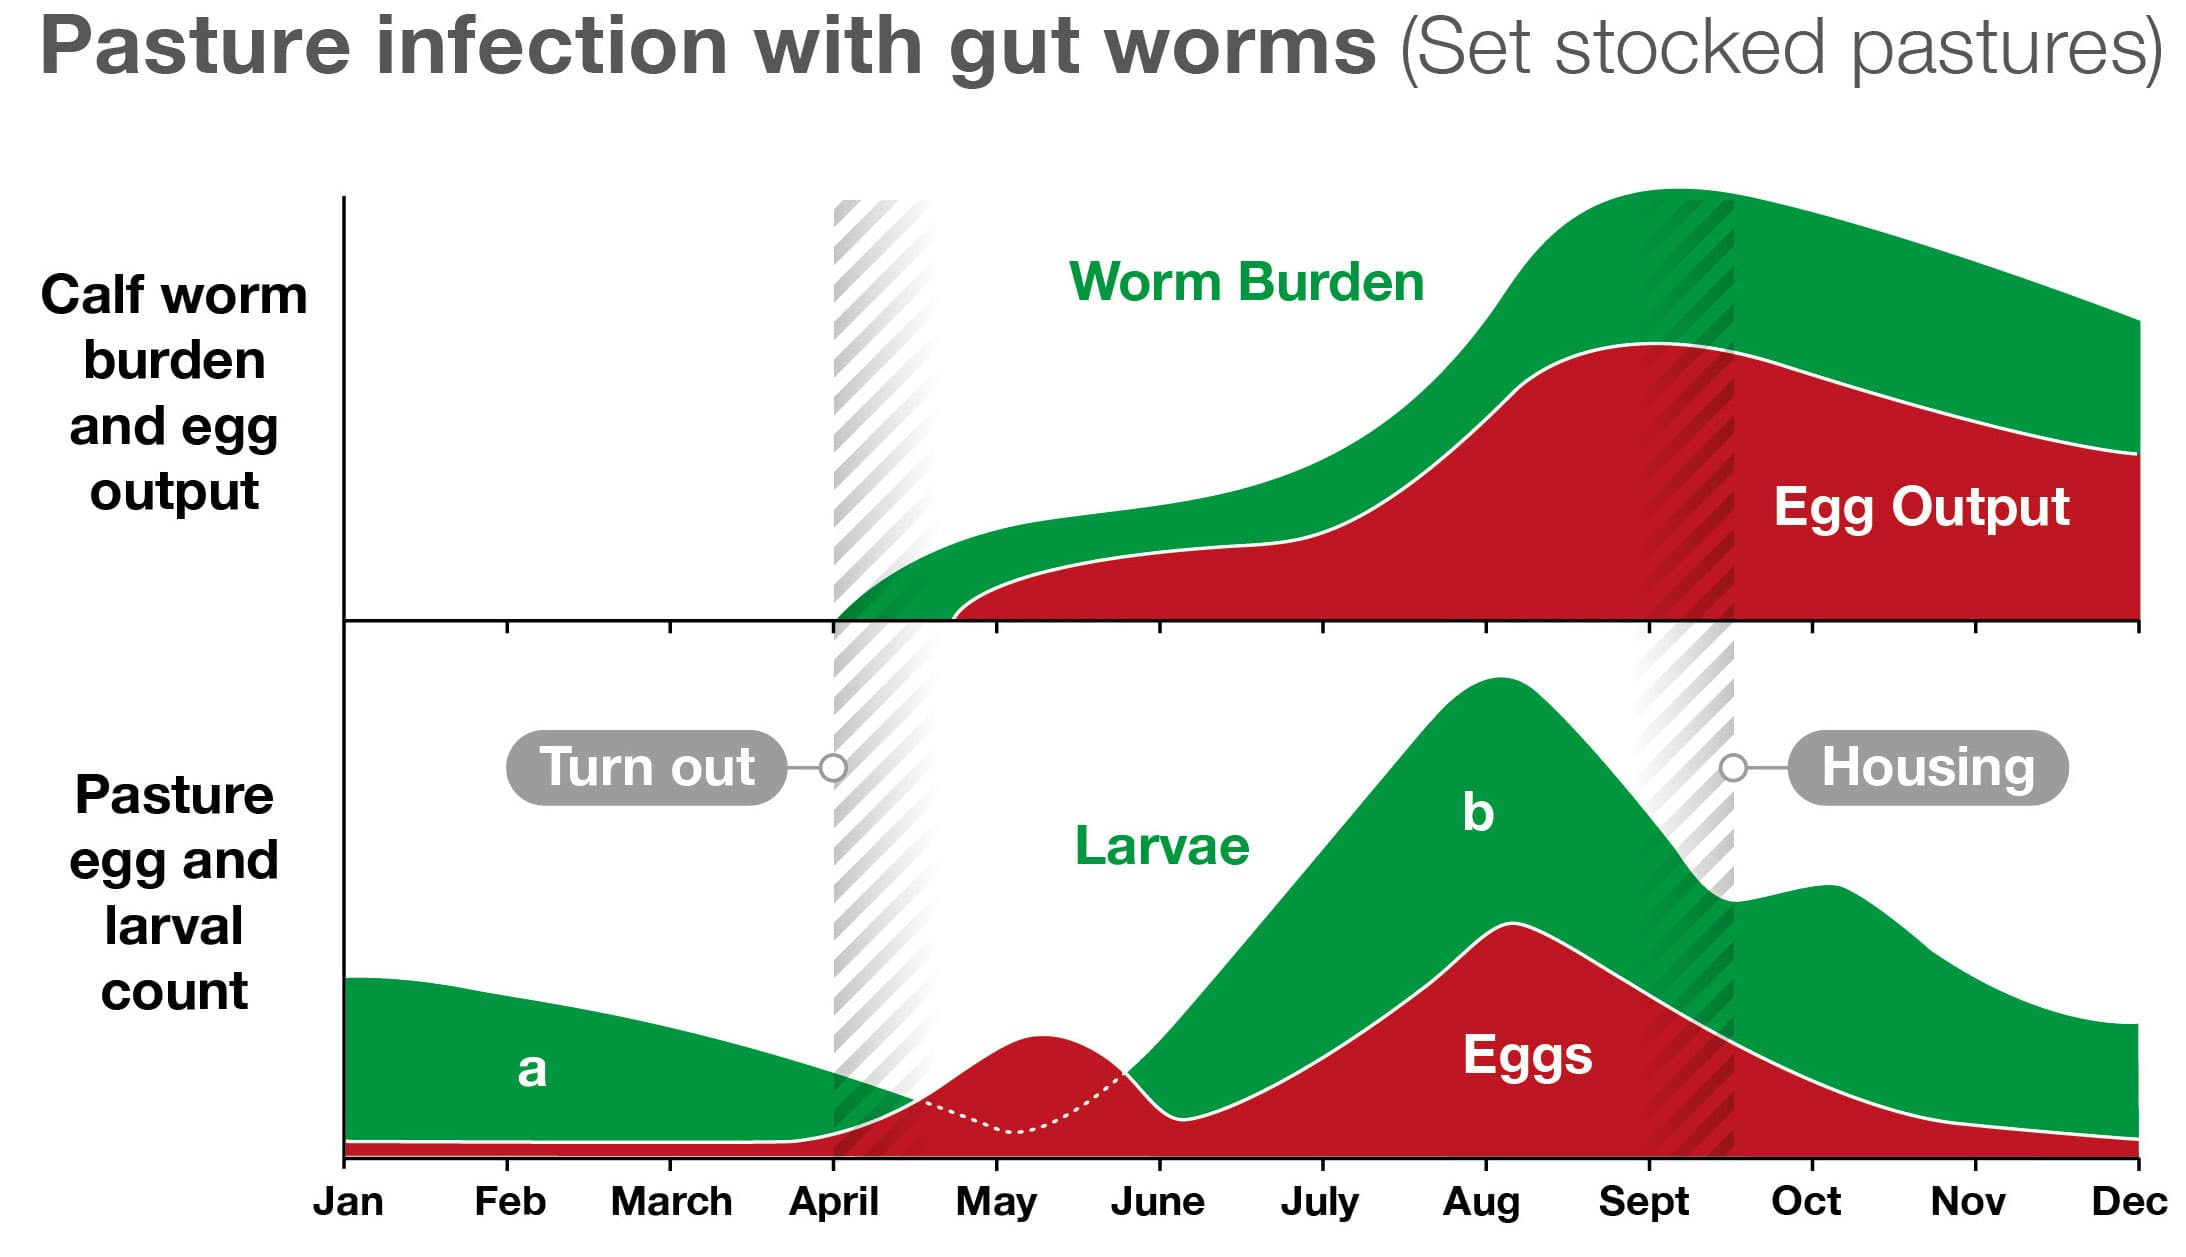 Pasture Infection with Gut Worms